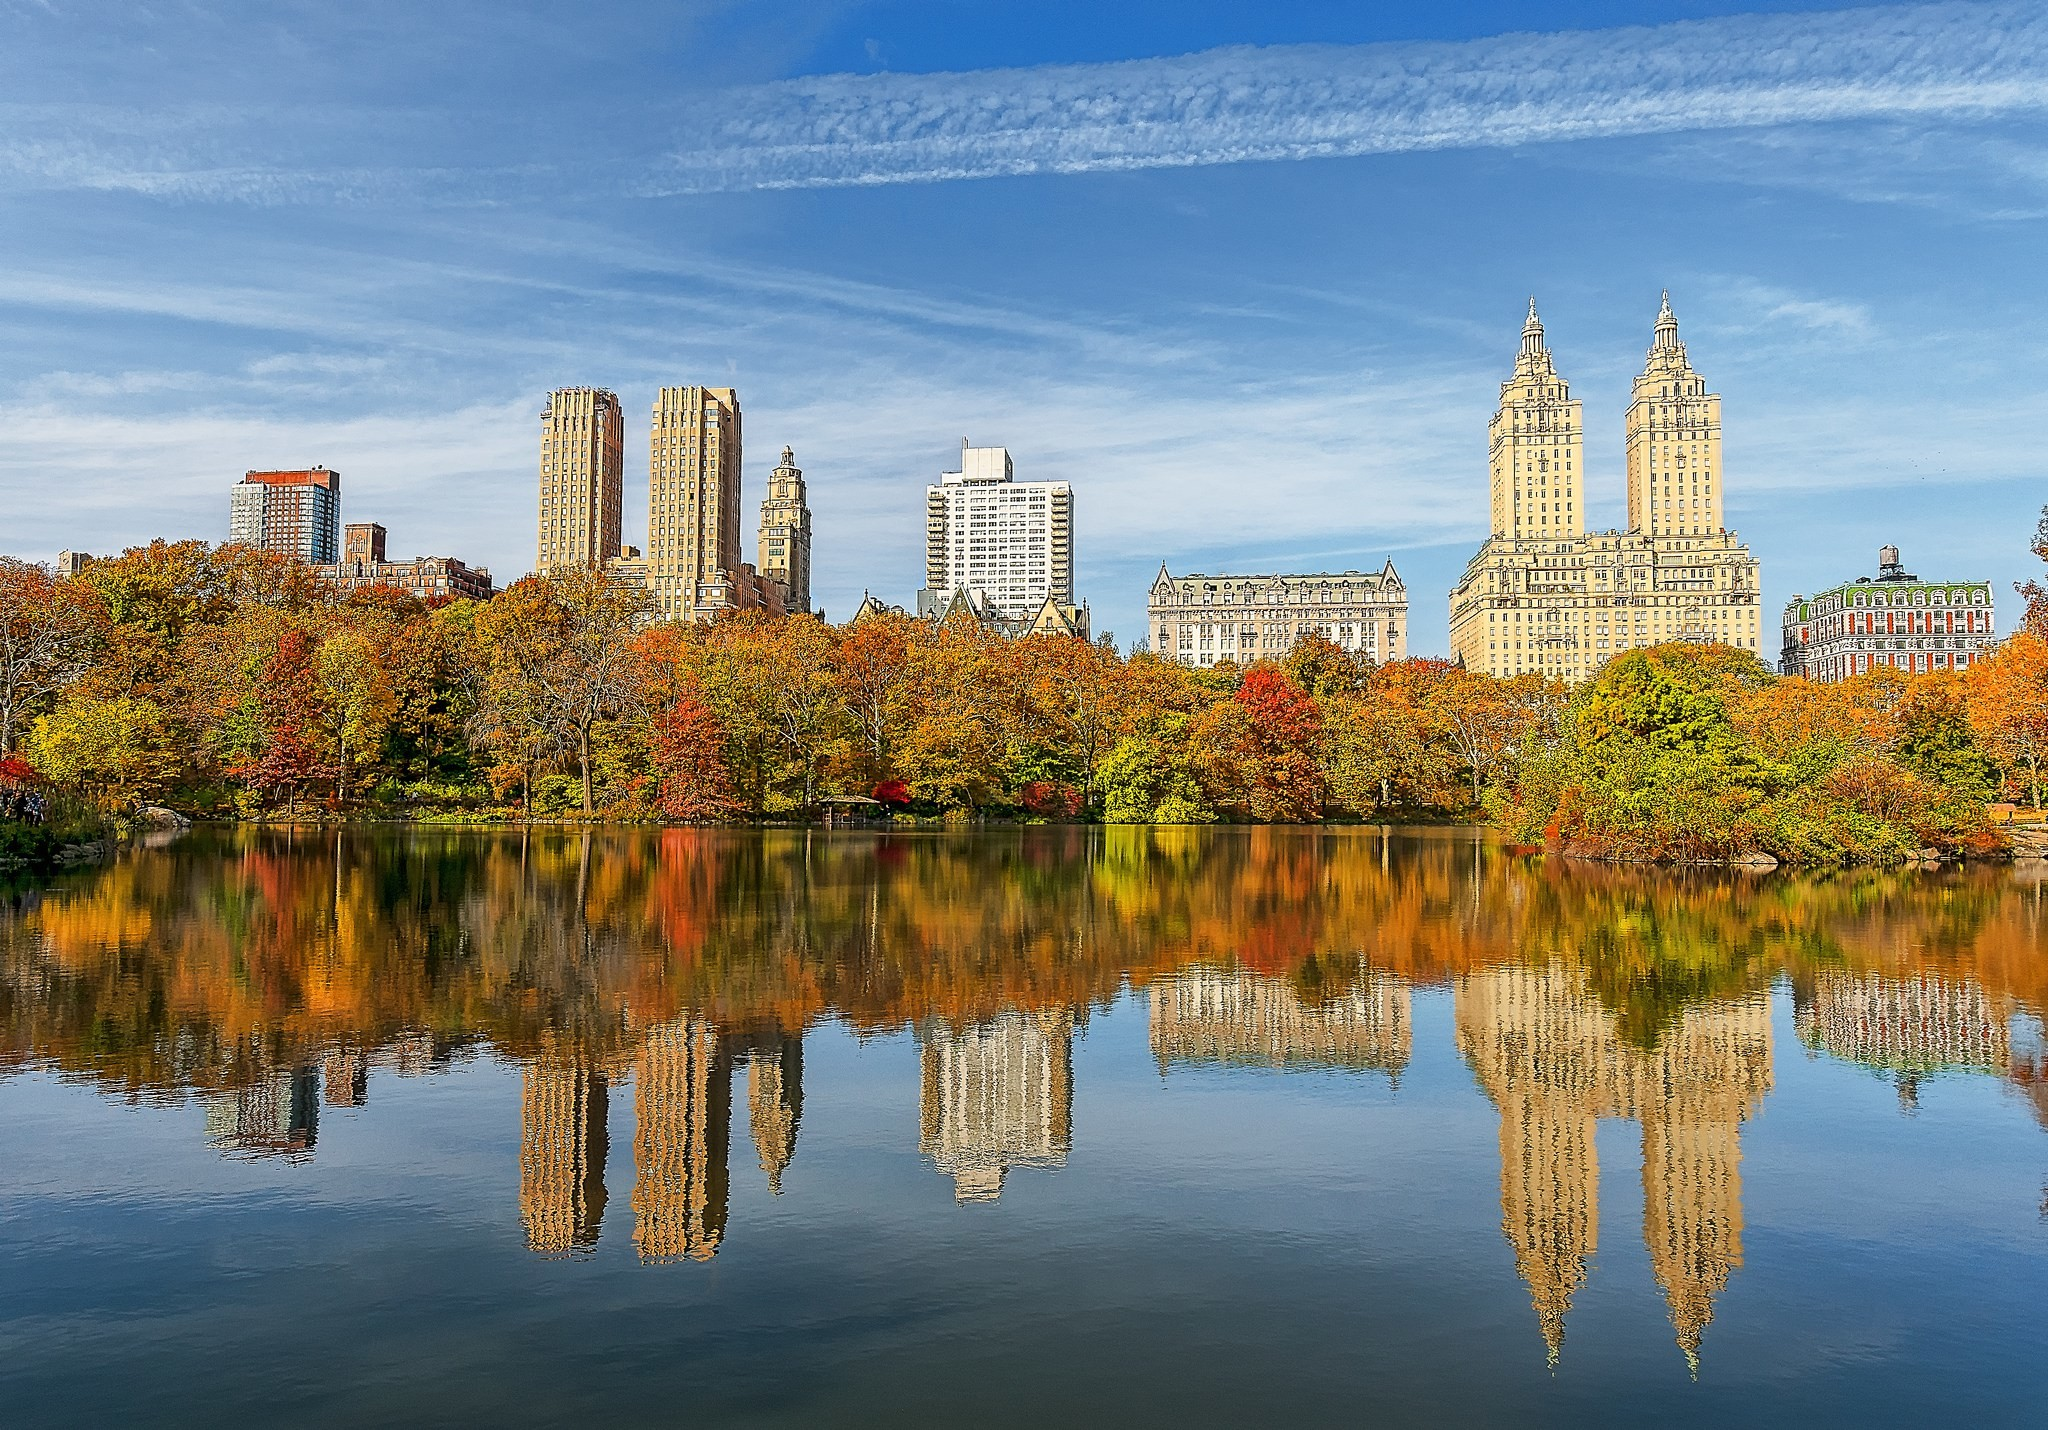 2048x1430 #1520577, HD Widescreen Wallpapers - central park wallpaper